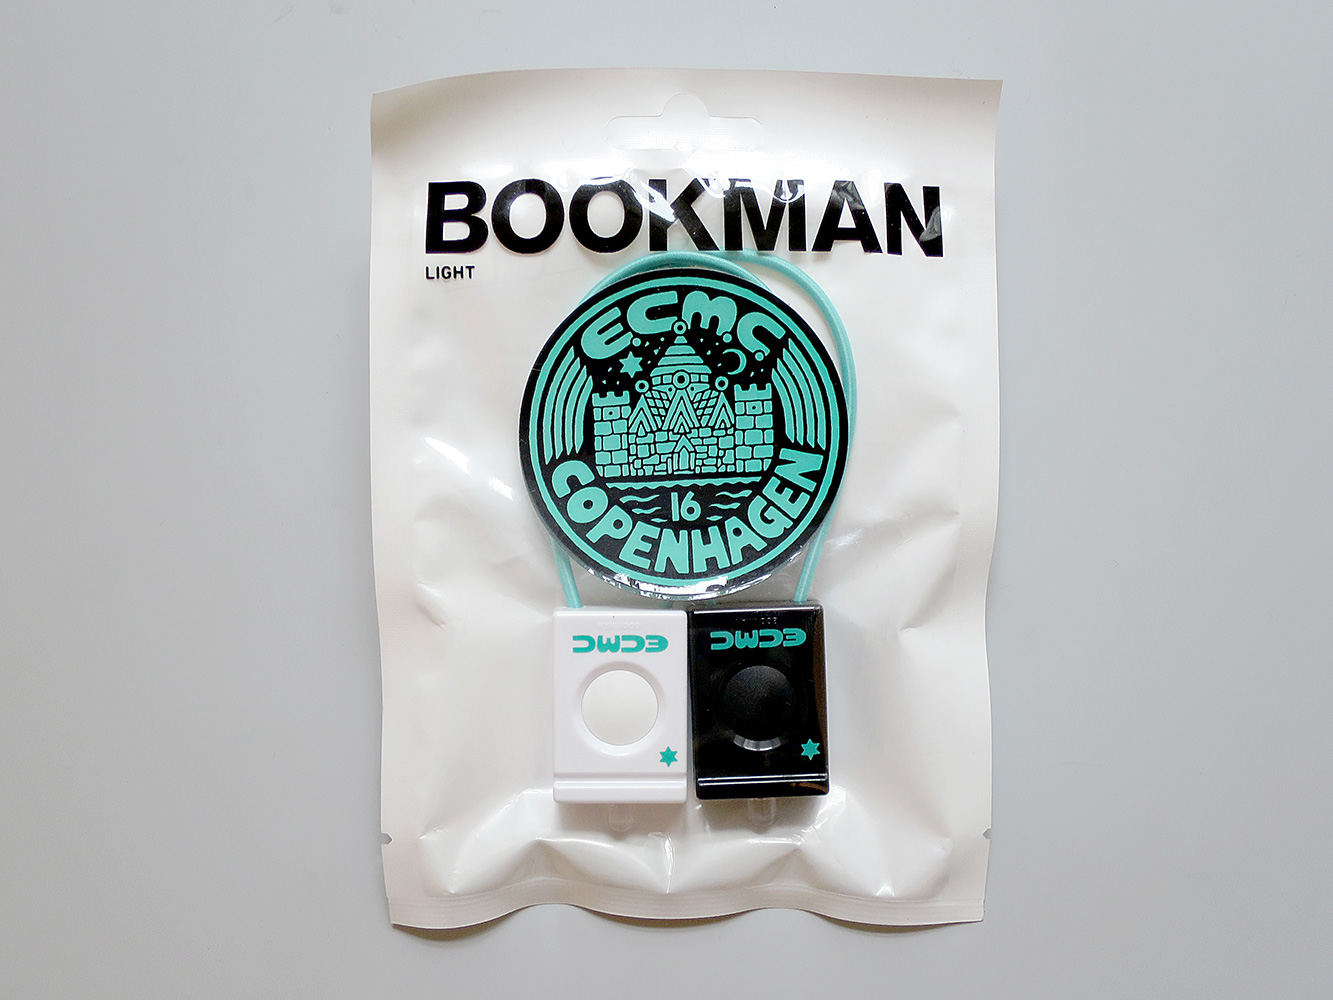 Bookman-Lights